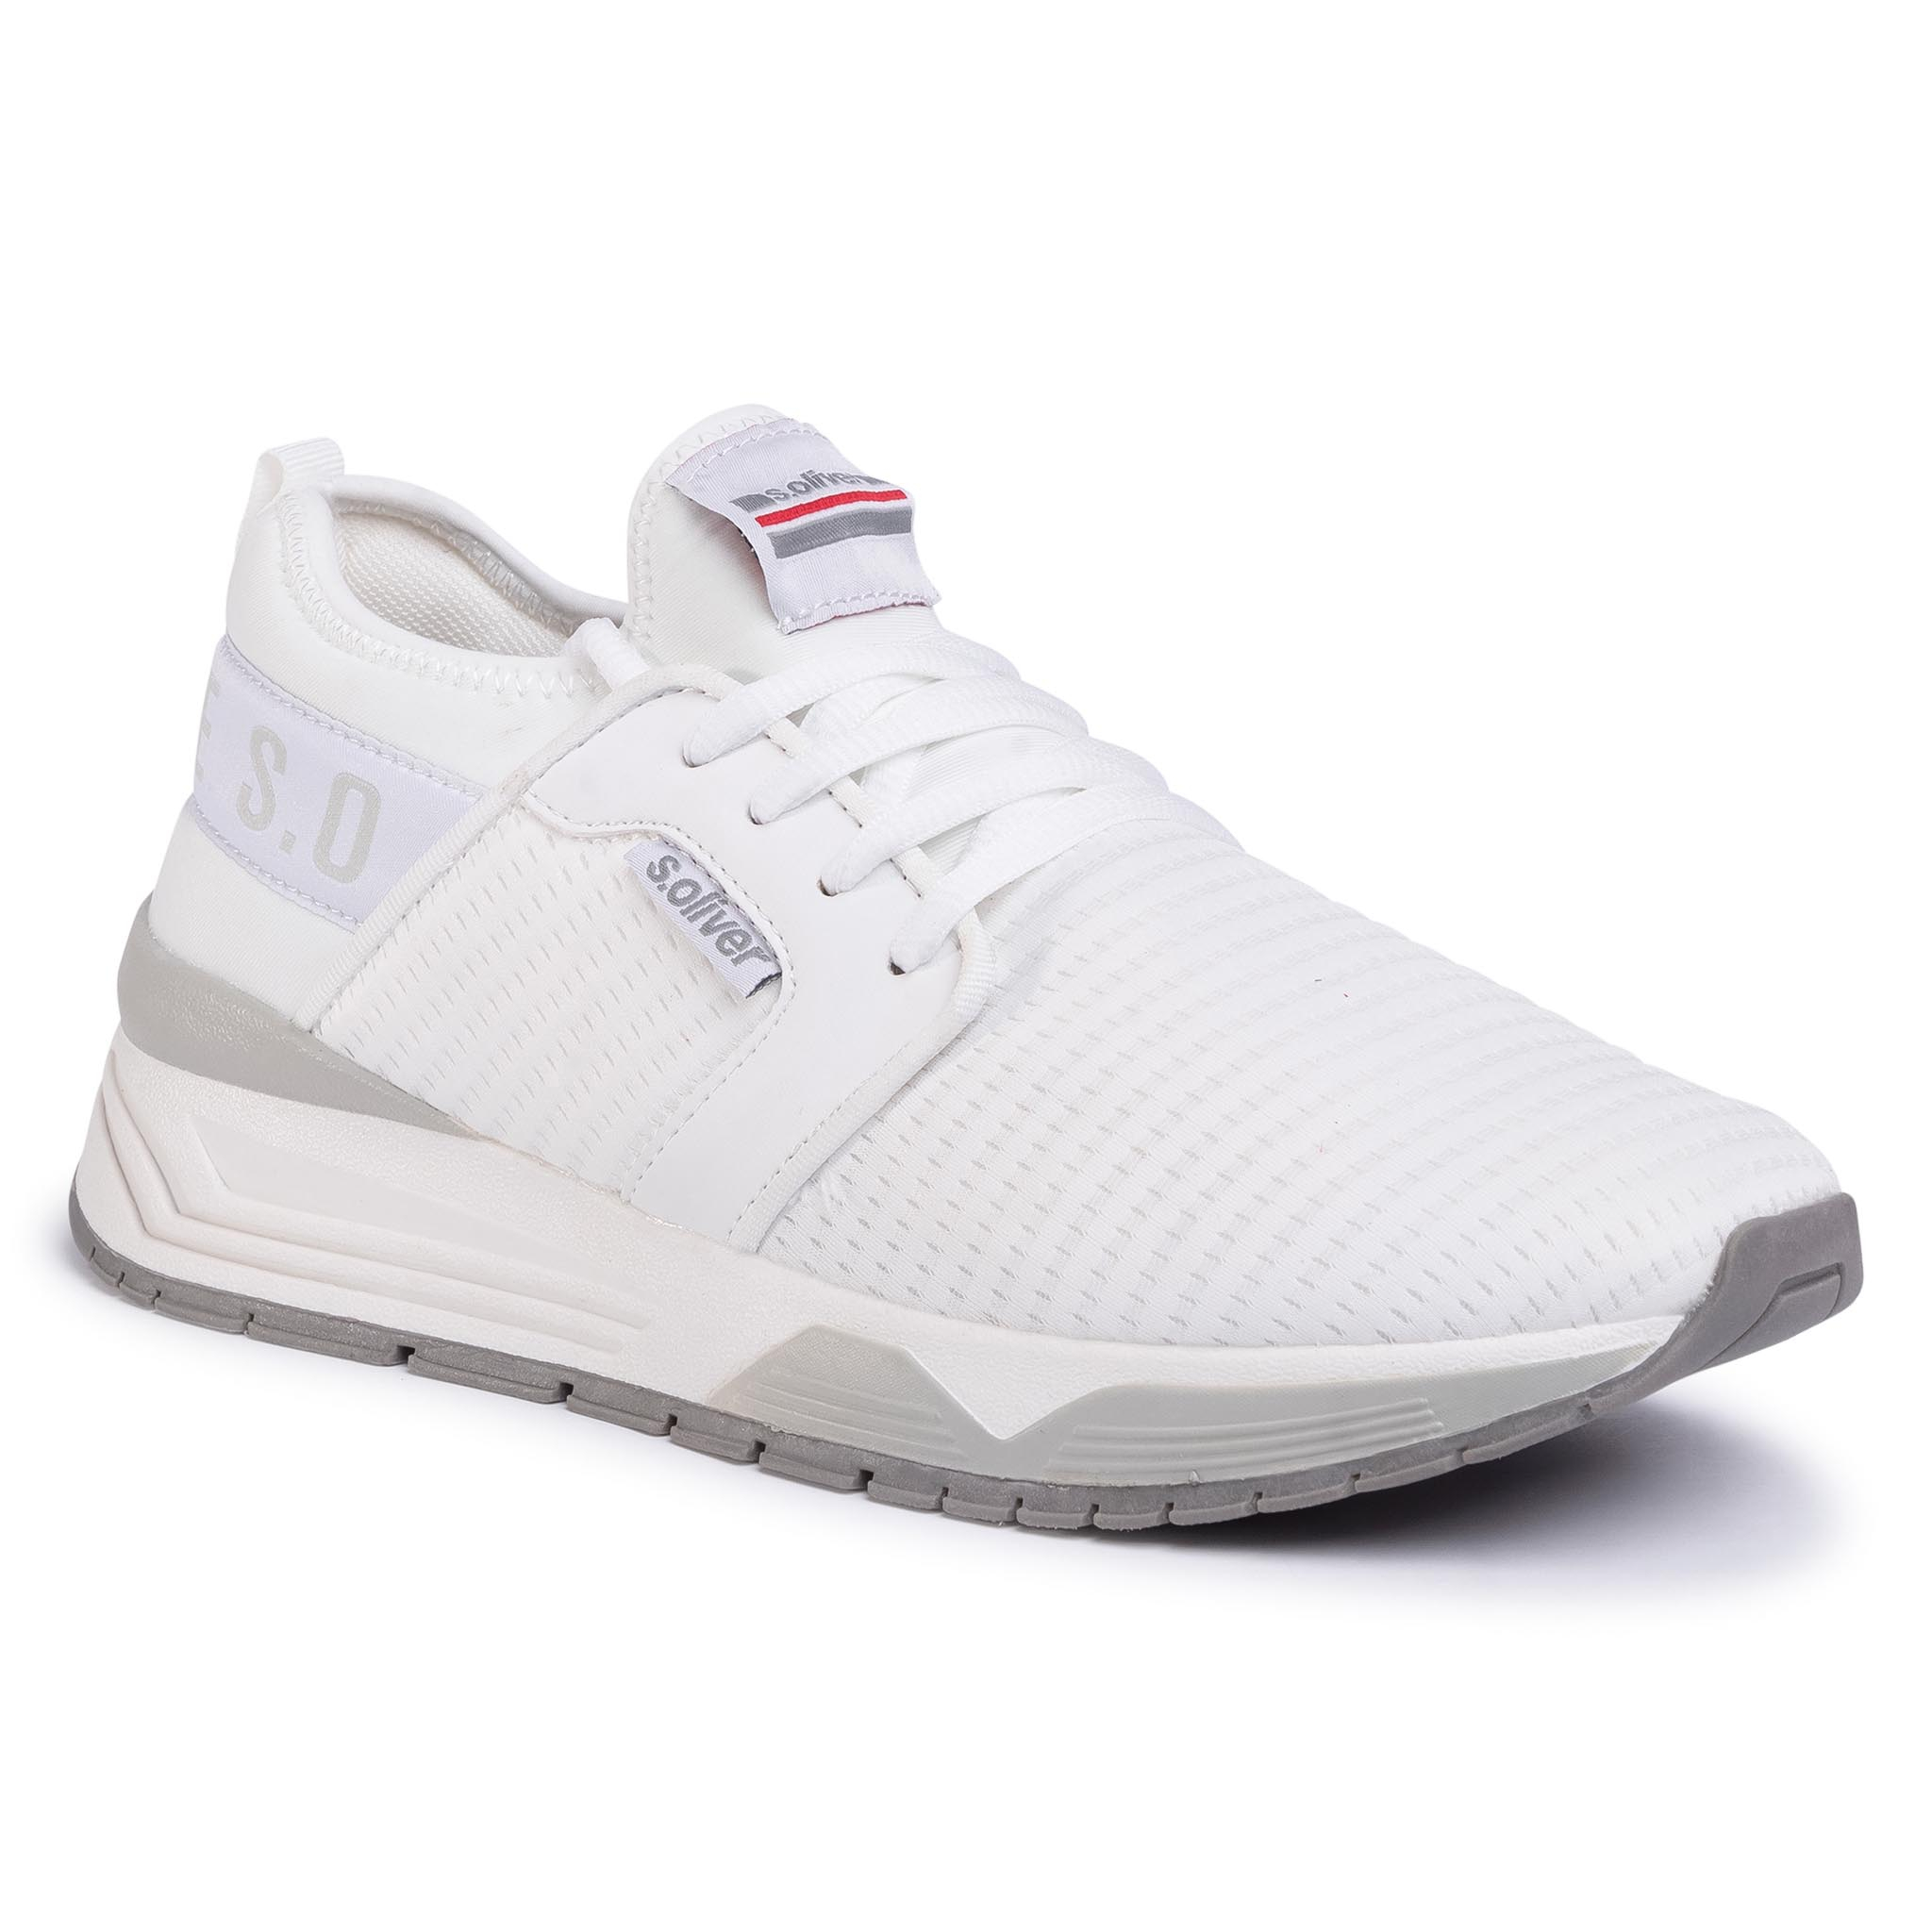 Sneakers S.OLIVER - 5-13639-24 White 100